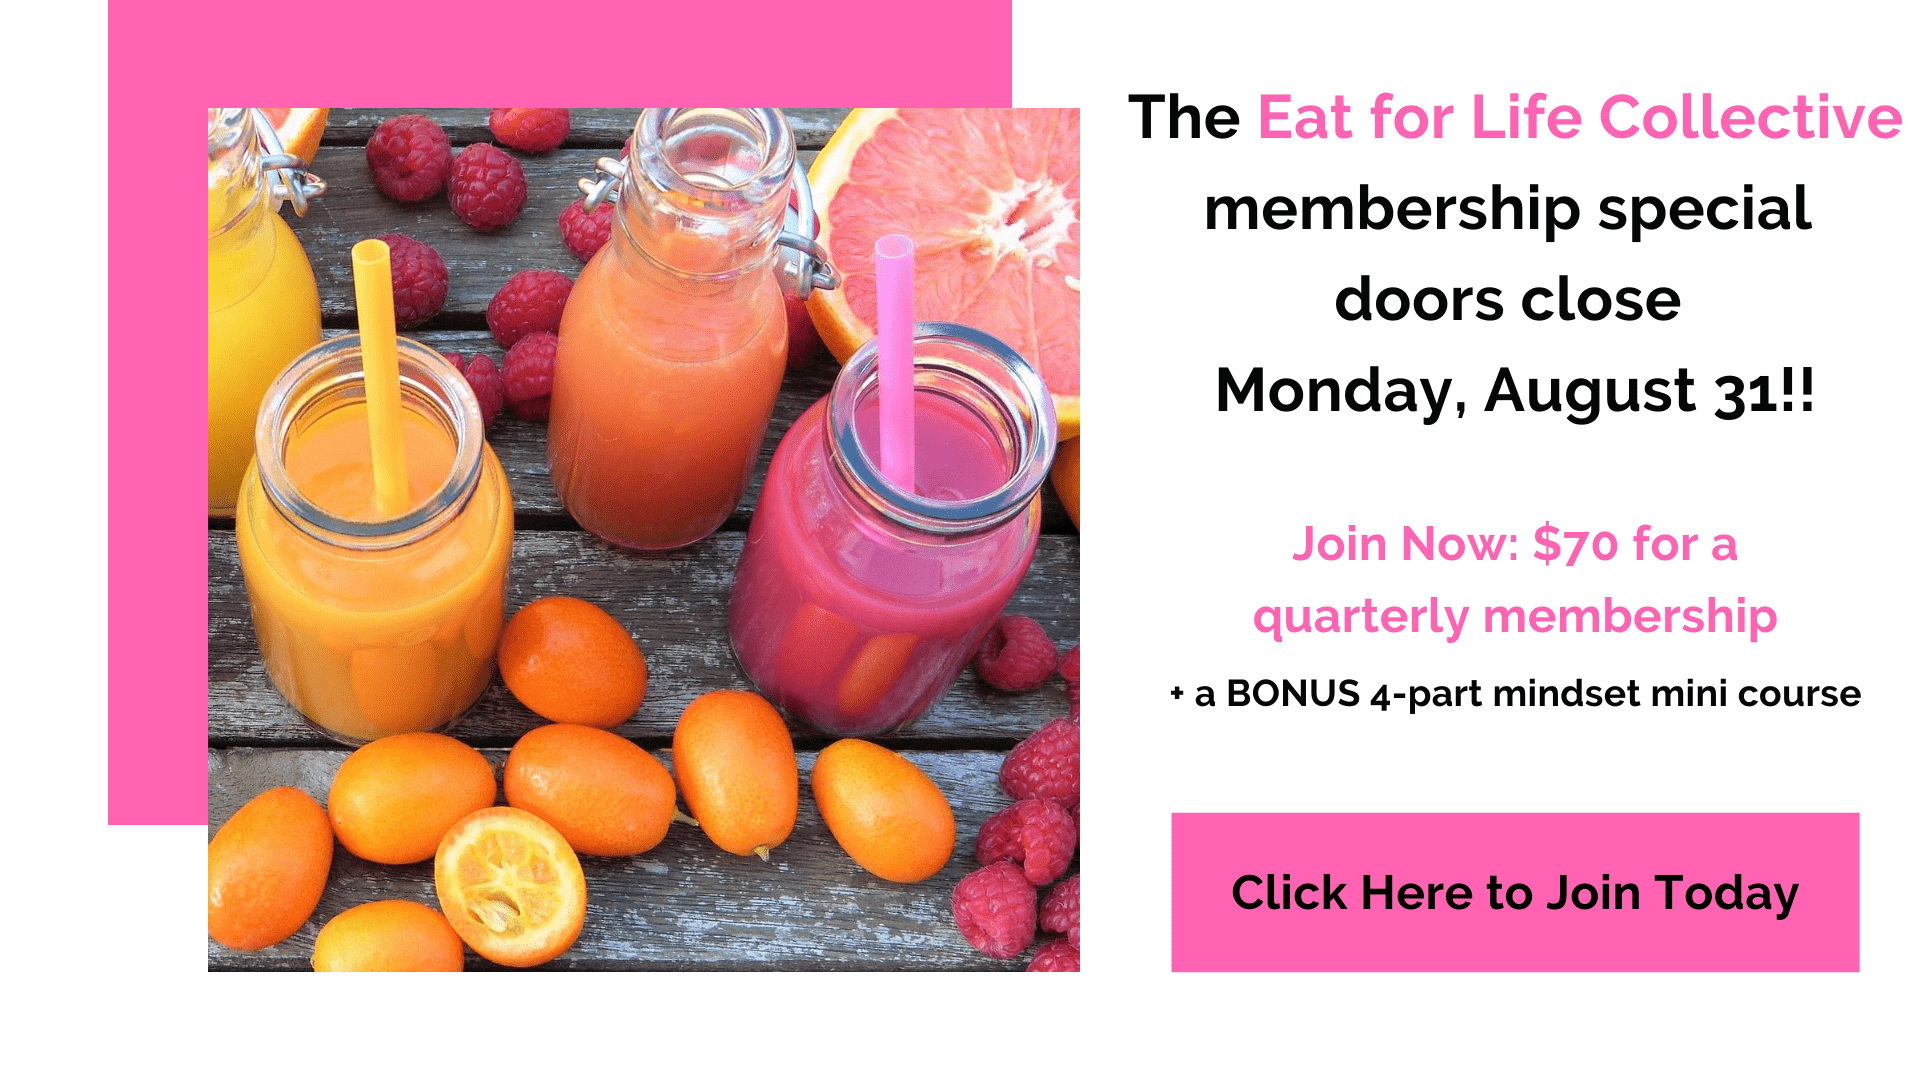 pink and orange juices next to text about how to join eat for life collective